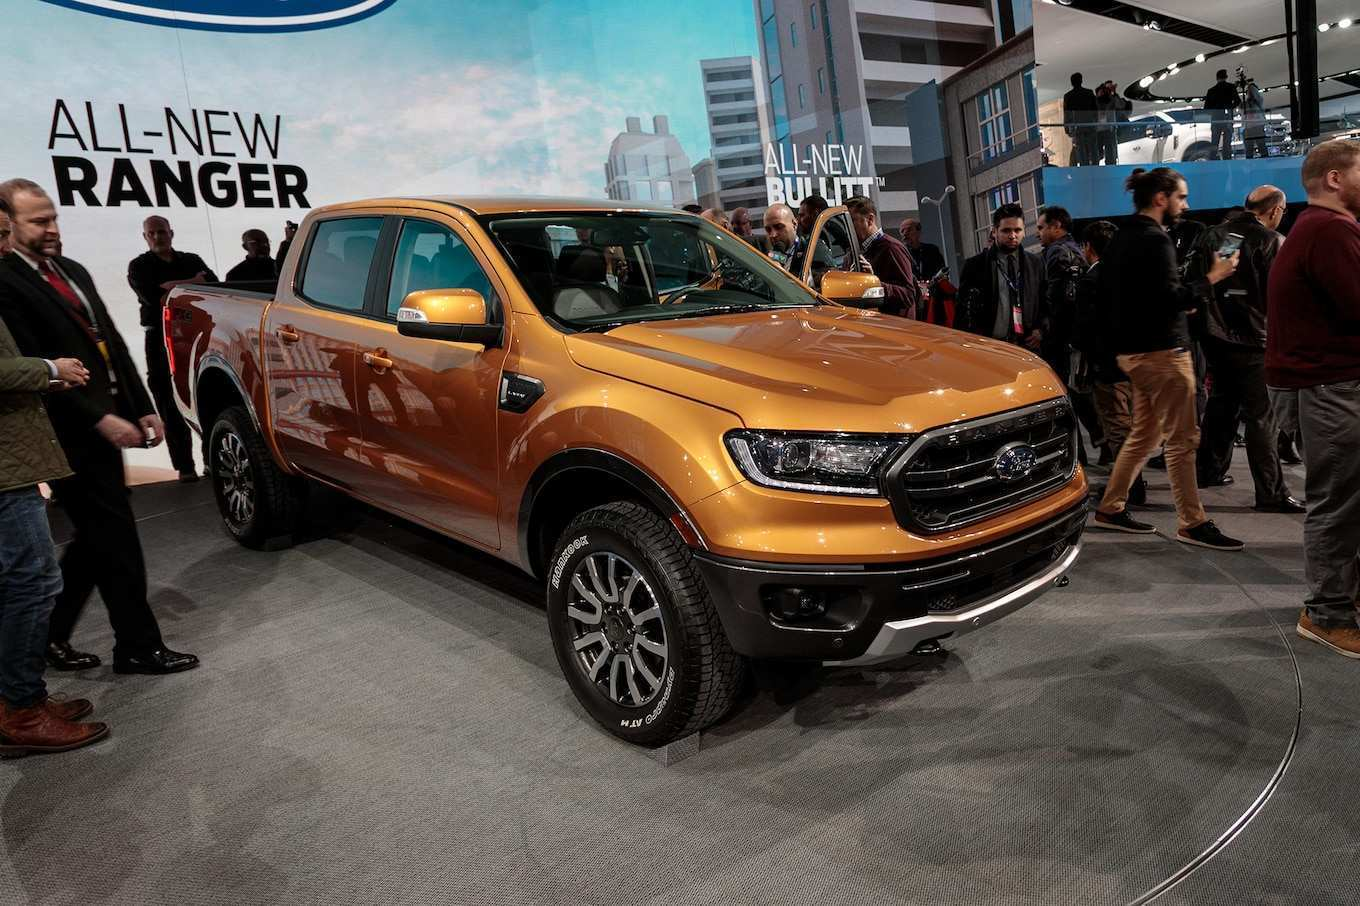 82 Concept of 2019 Ford Ranger Dimensions New Concept with 2019 Ford Ranger Dimensions